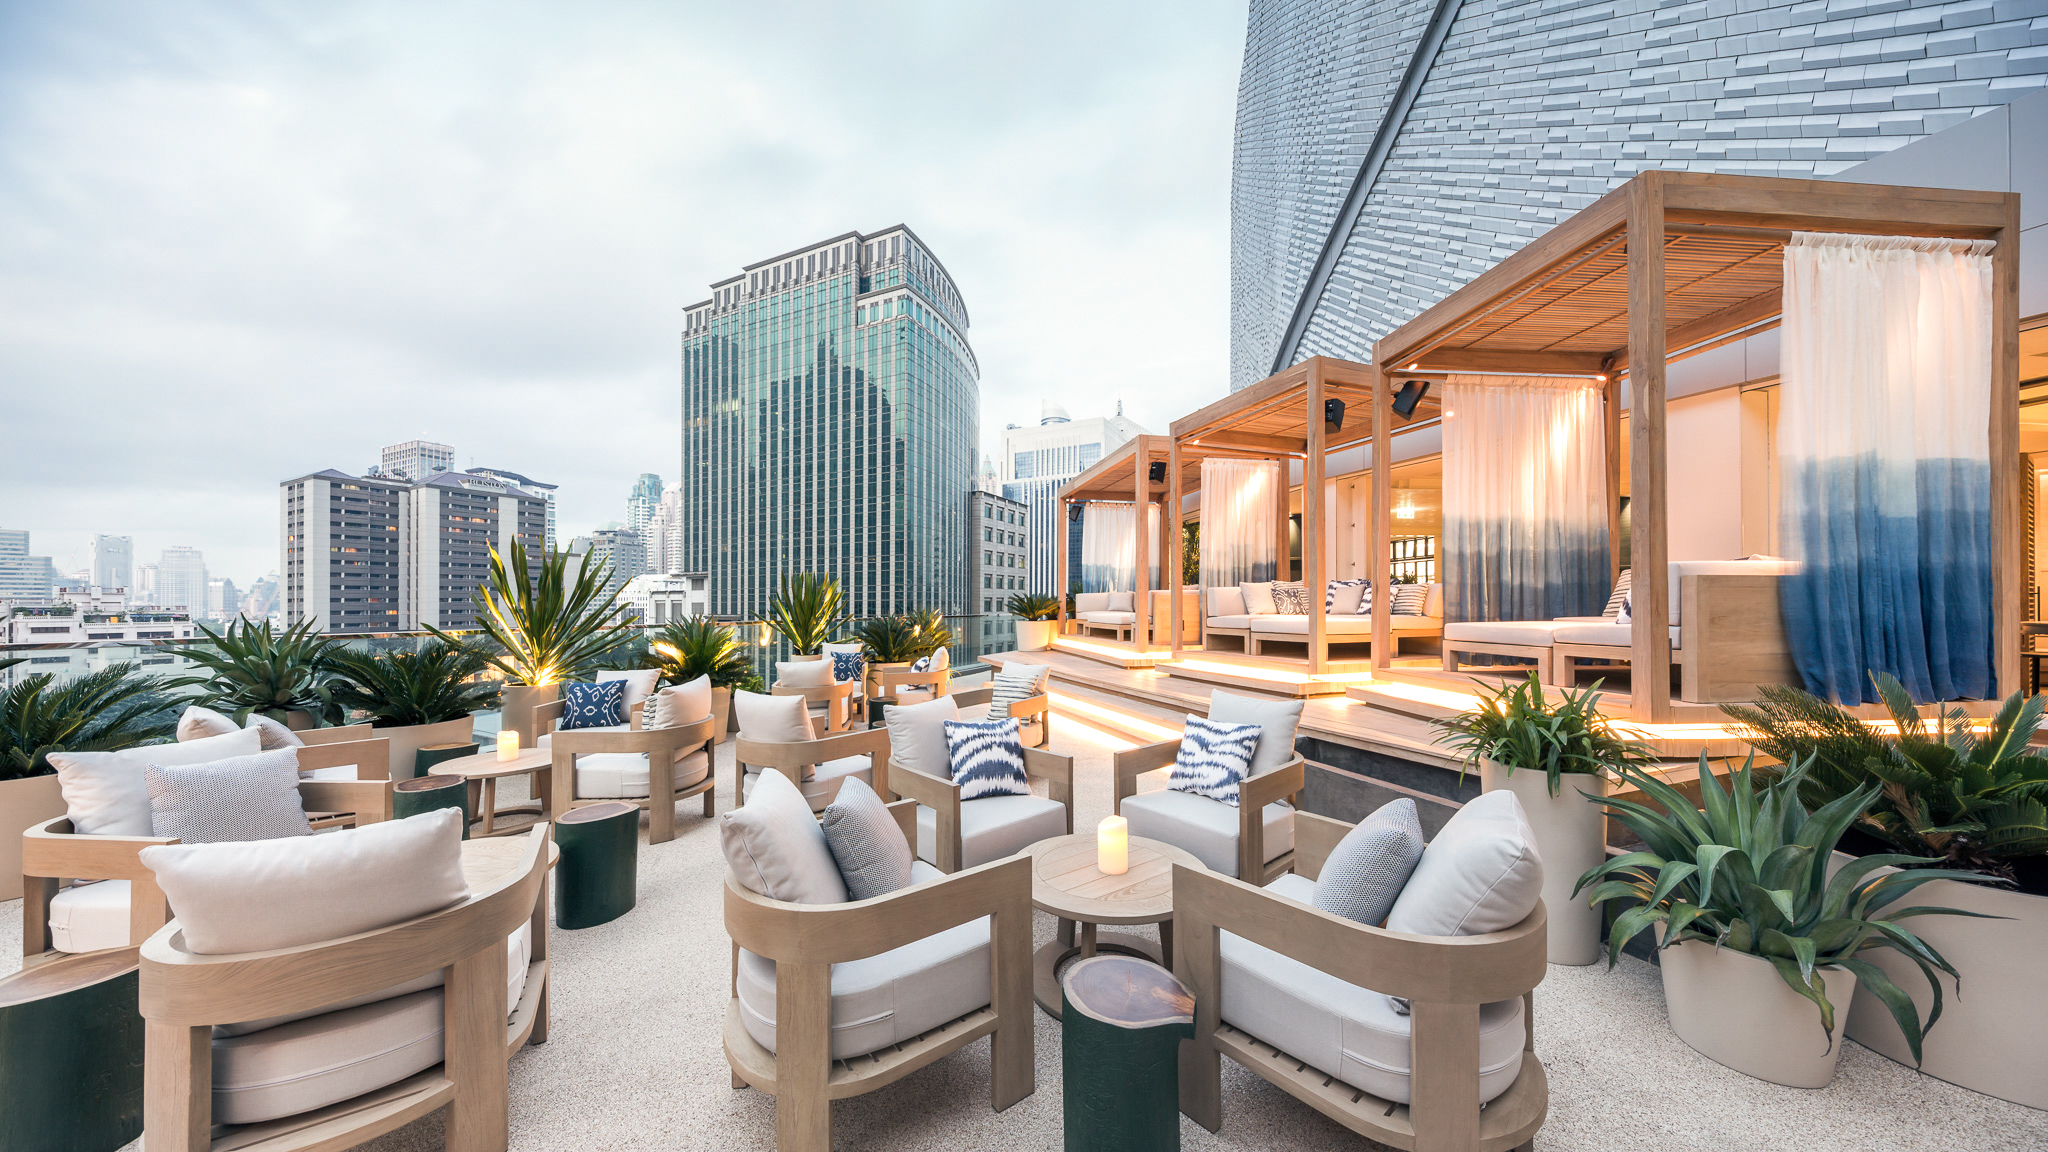 The alfreco terrace, Siwilai City Club at Central Embassy